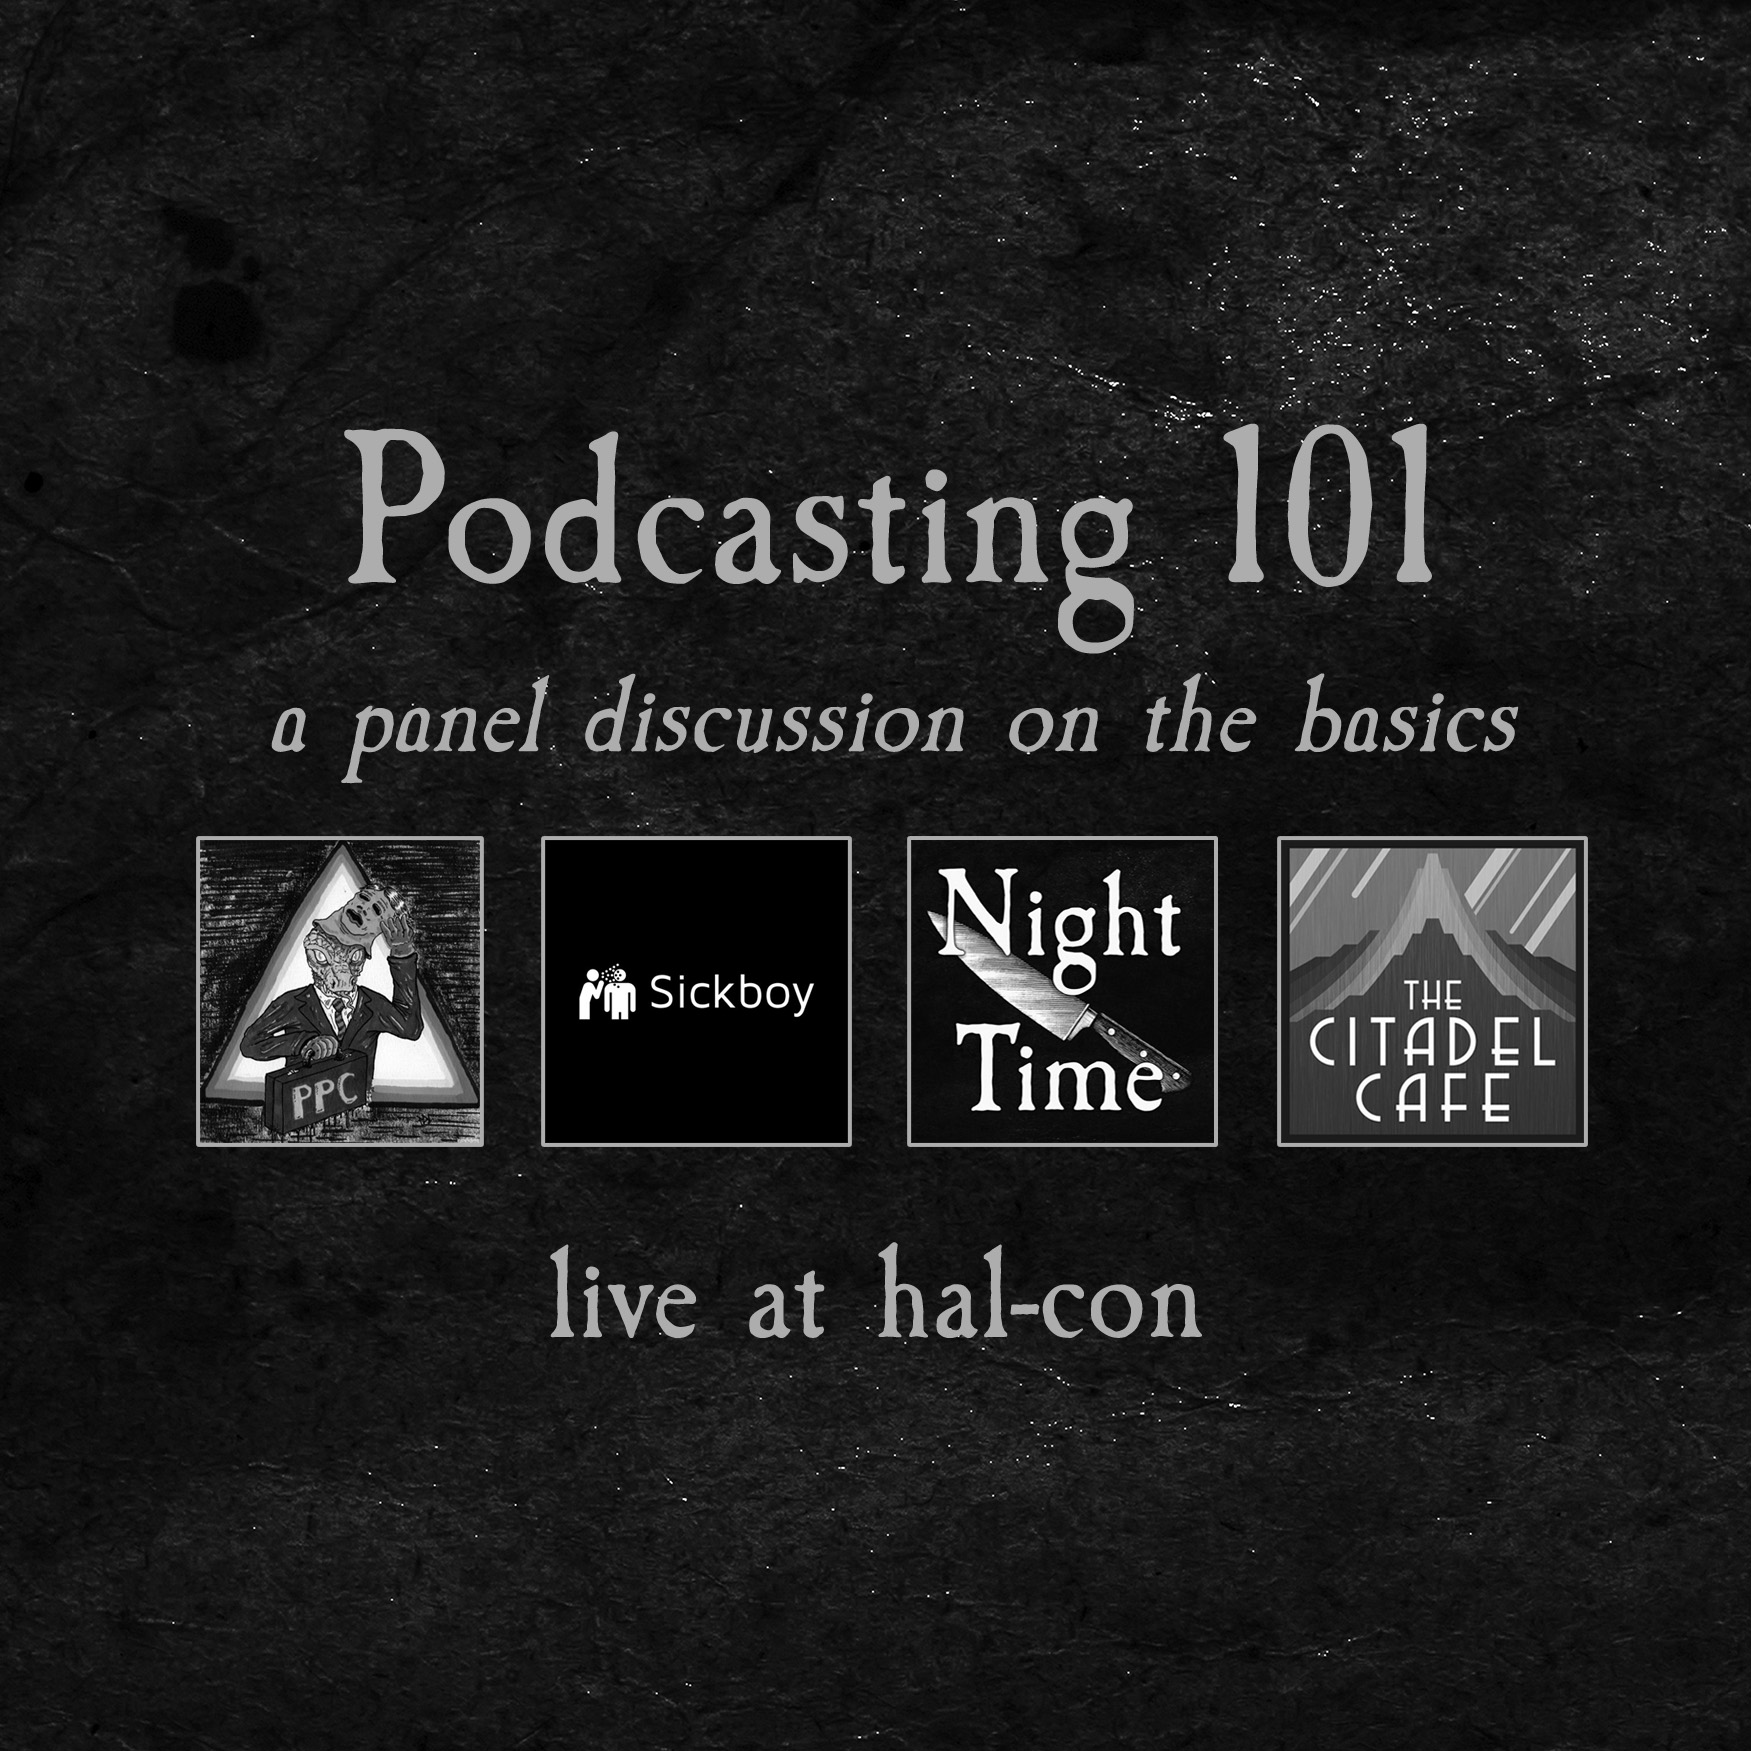 live at halcon logo.jpg